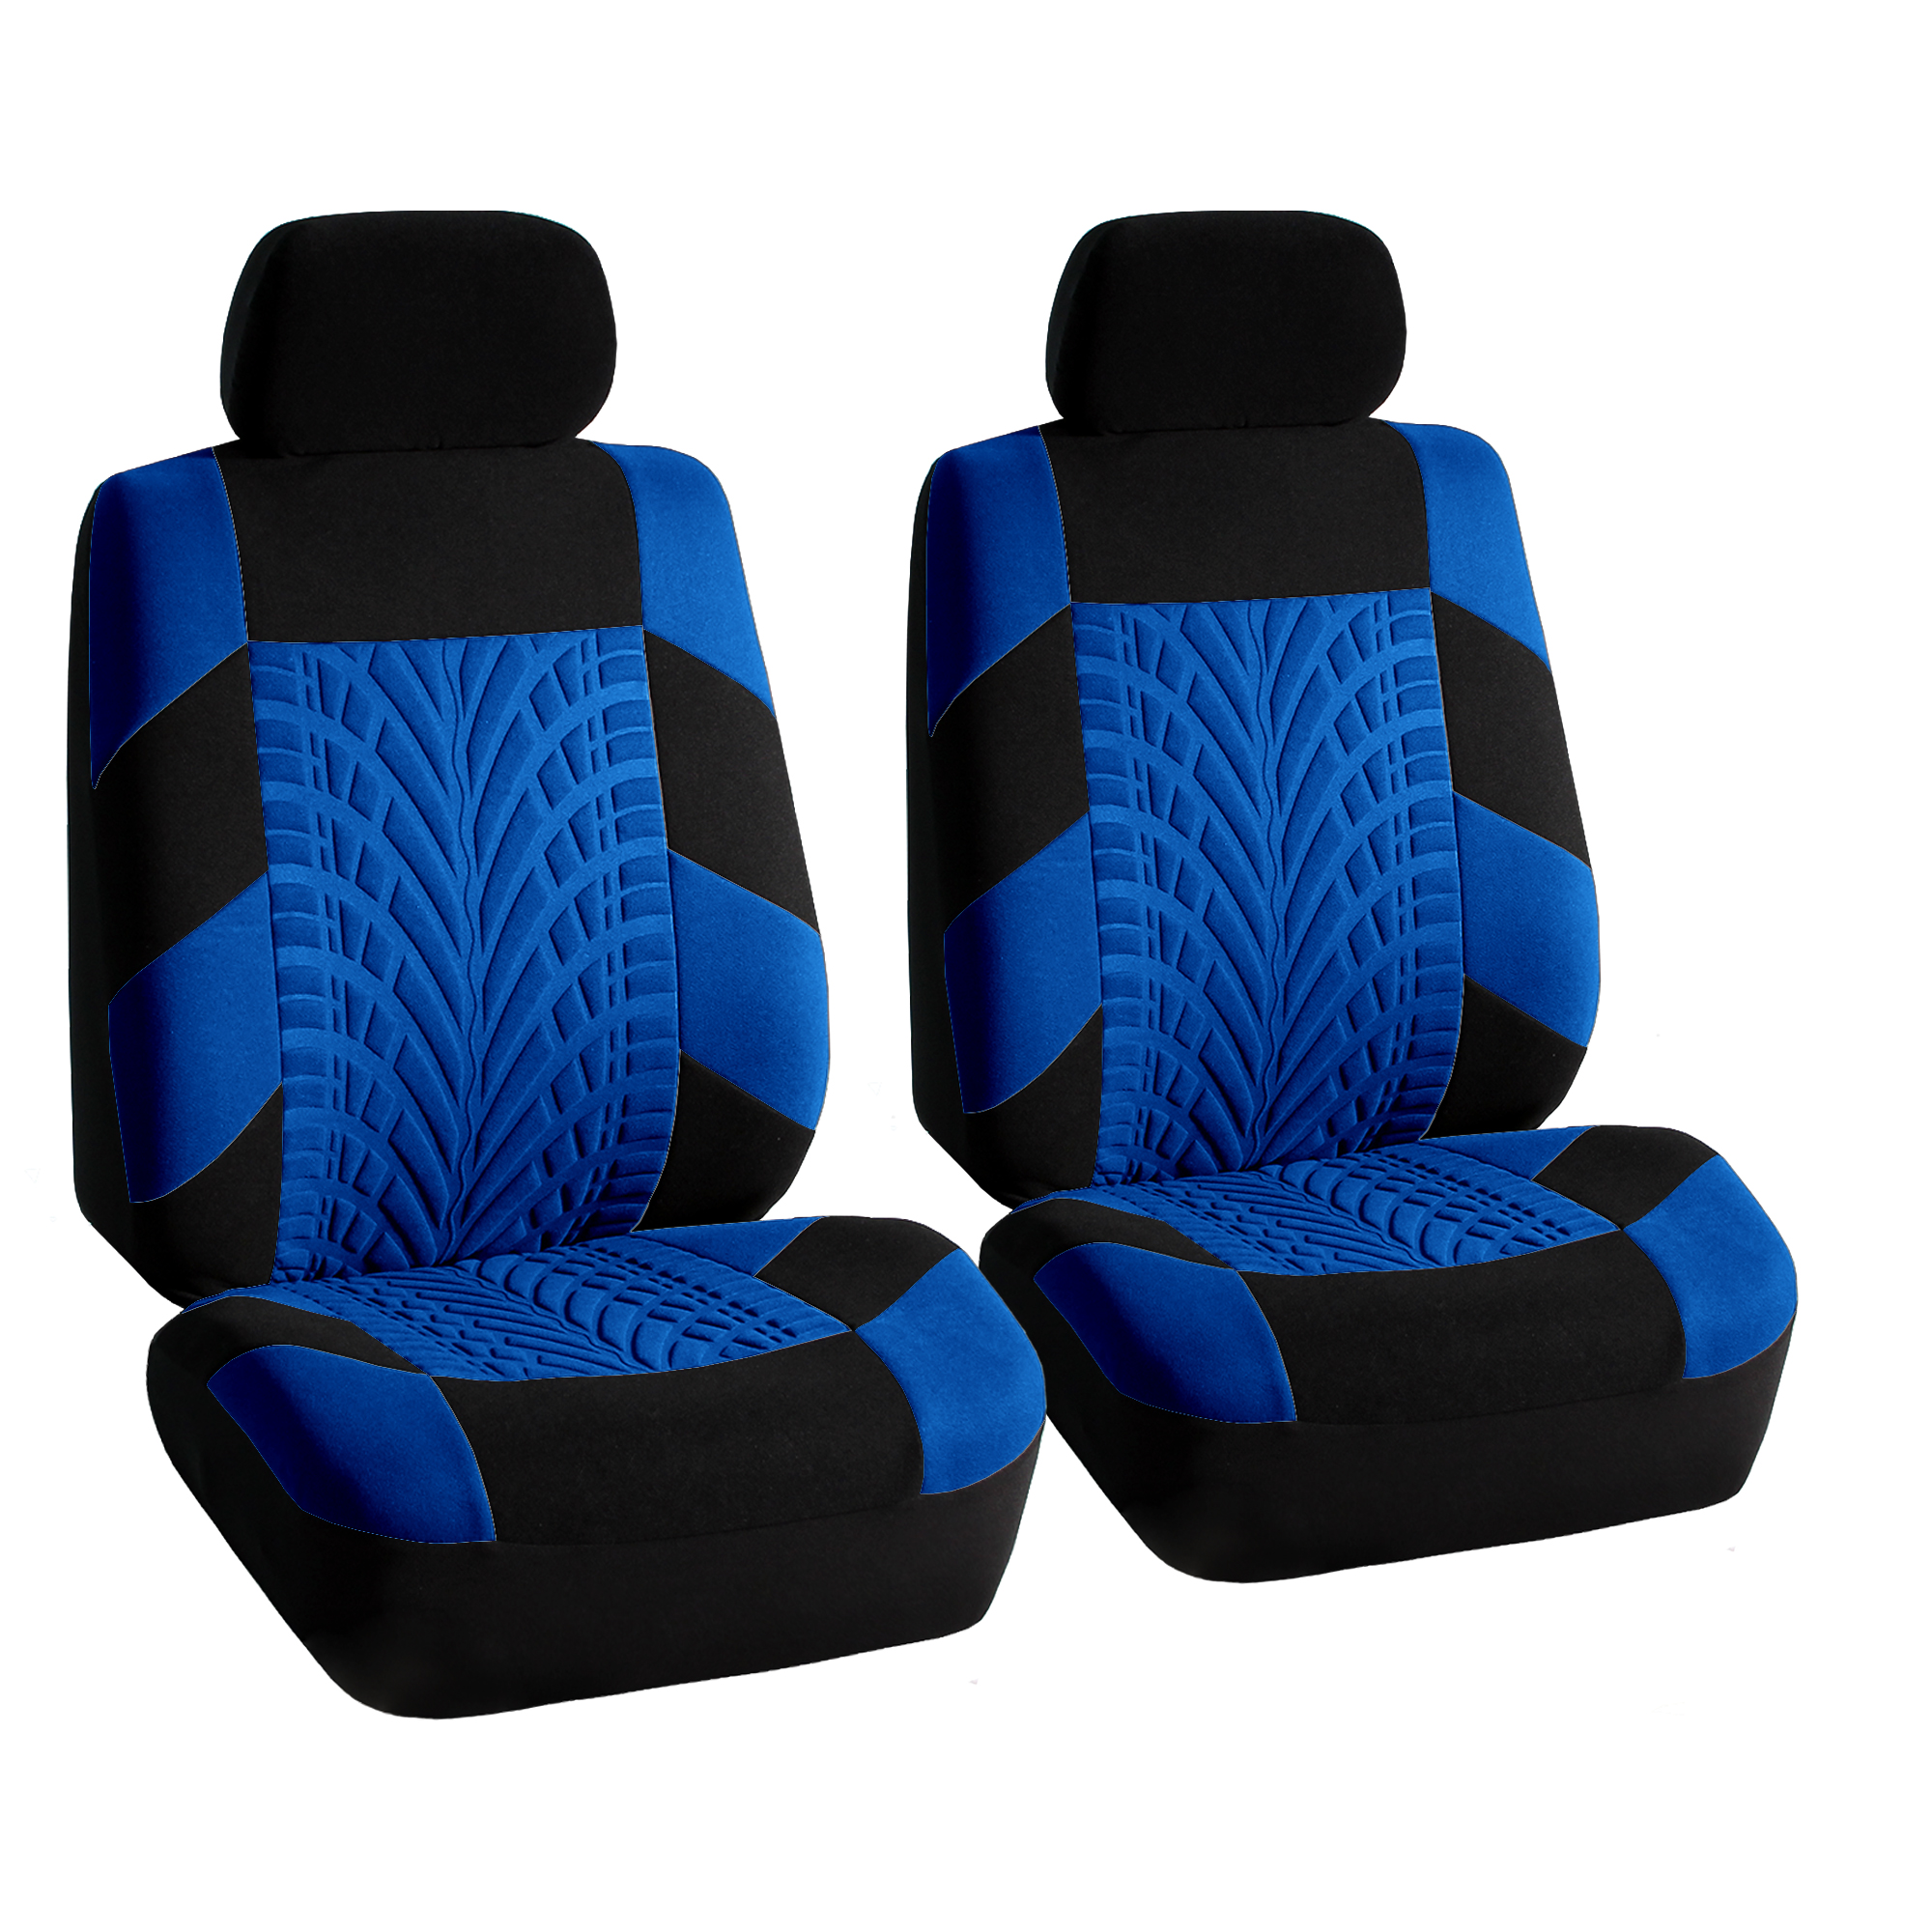 Blue Car Seat Covers Set For Auto W/Floor Mat 807151115610